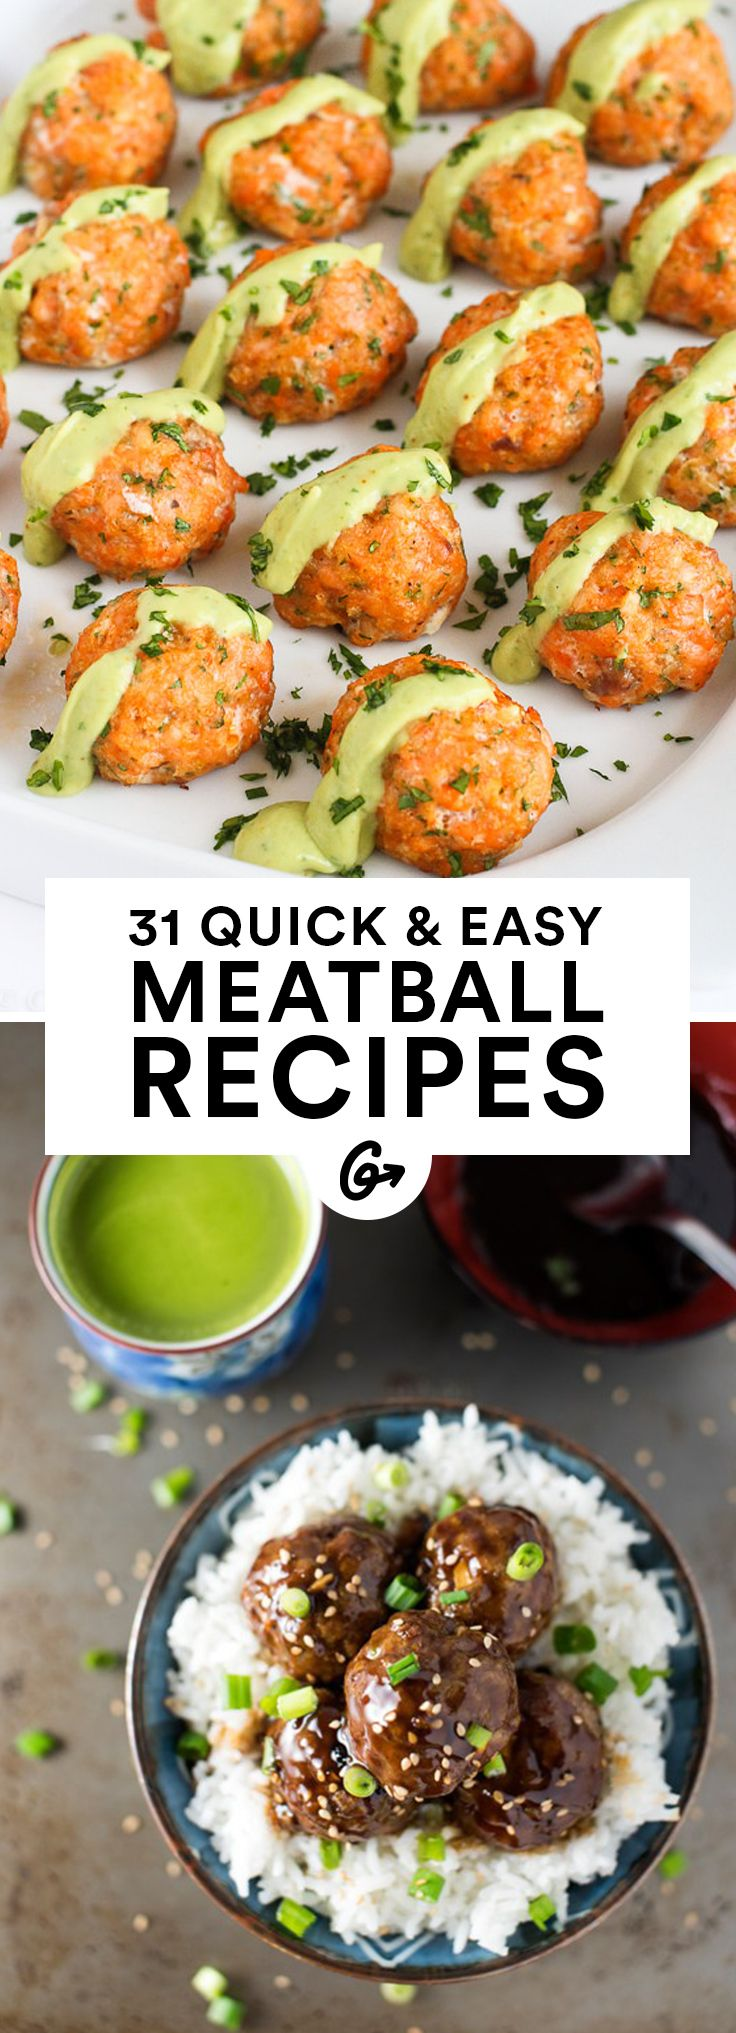 Enjoyed on top of spaghetti, stuffed into a sandwich, or passed as appetizers #recipes #healthy #meatballs http://greatist.com/eat/healthy-meatball-recipes